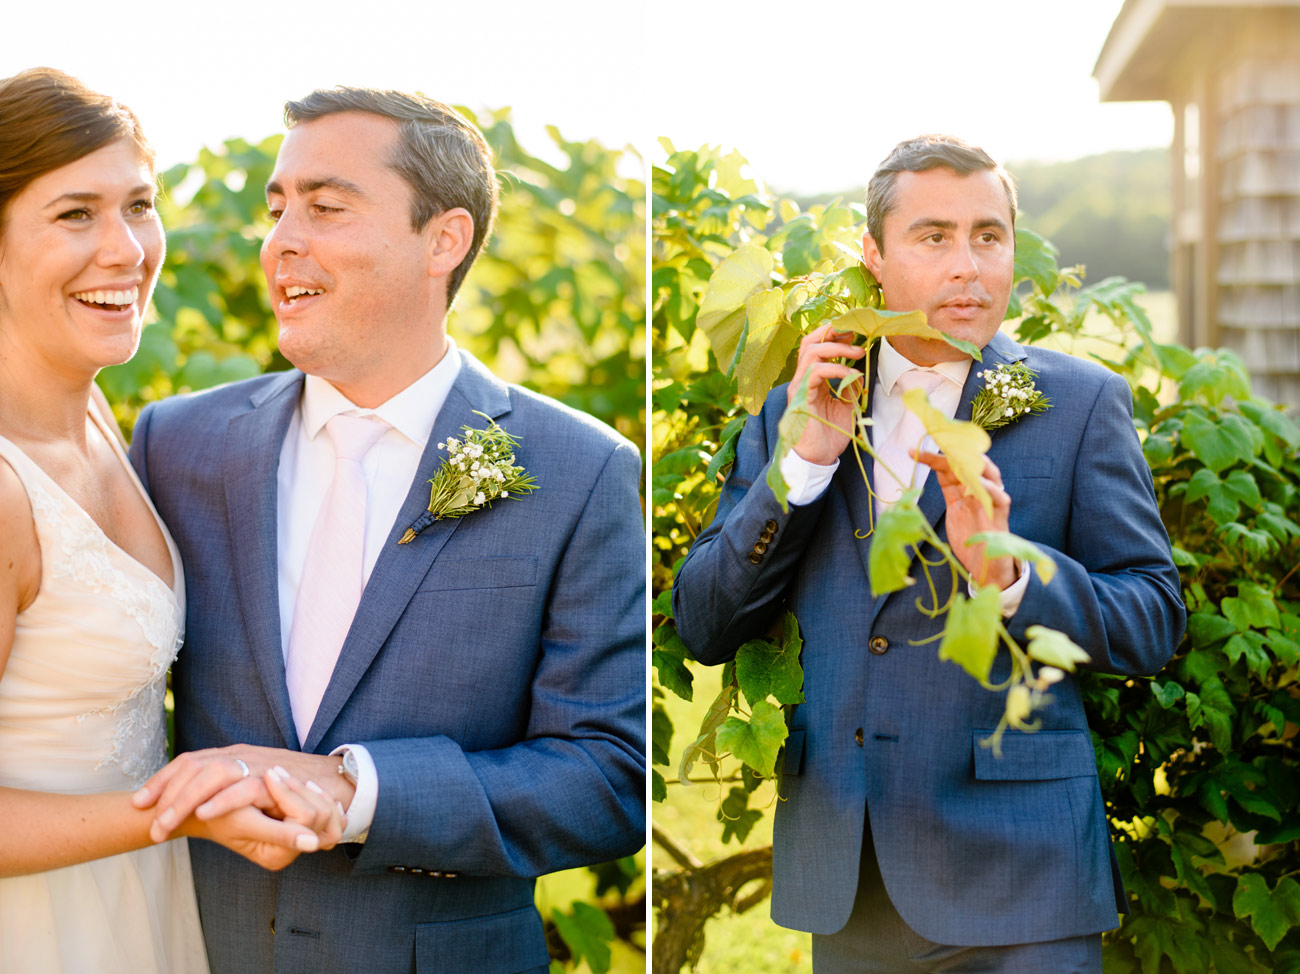 bride and groom creative portraits in the vineyard at bourne farm, cape cod mass rustic vineyard wedding photos